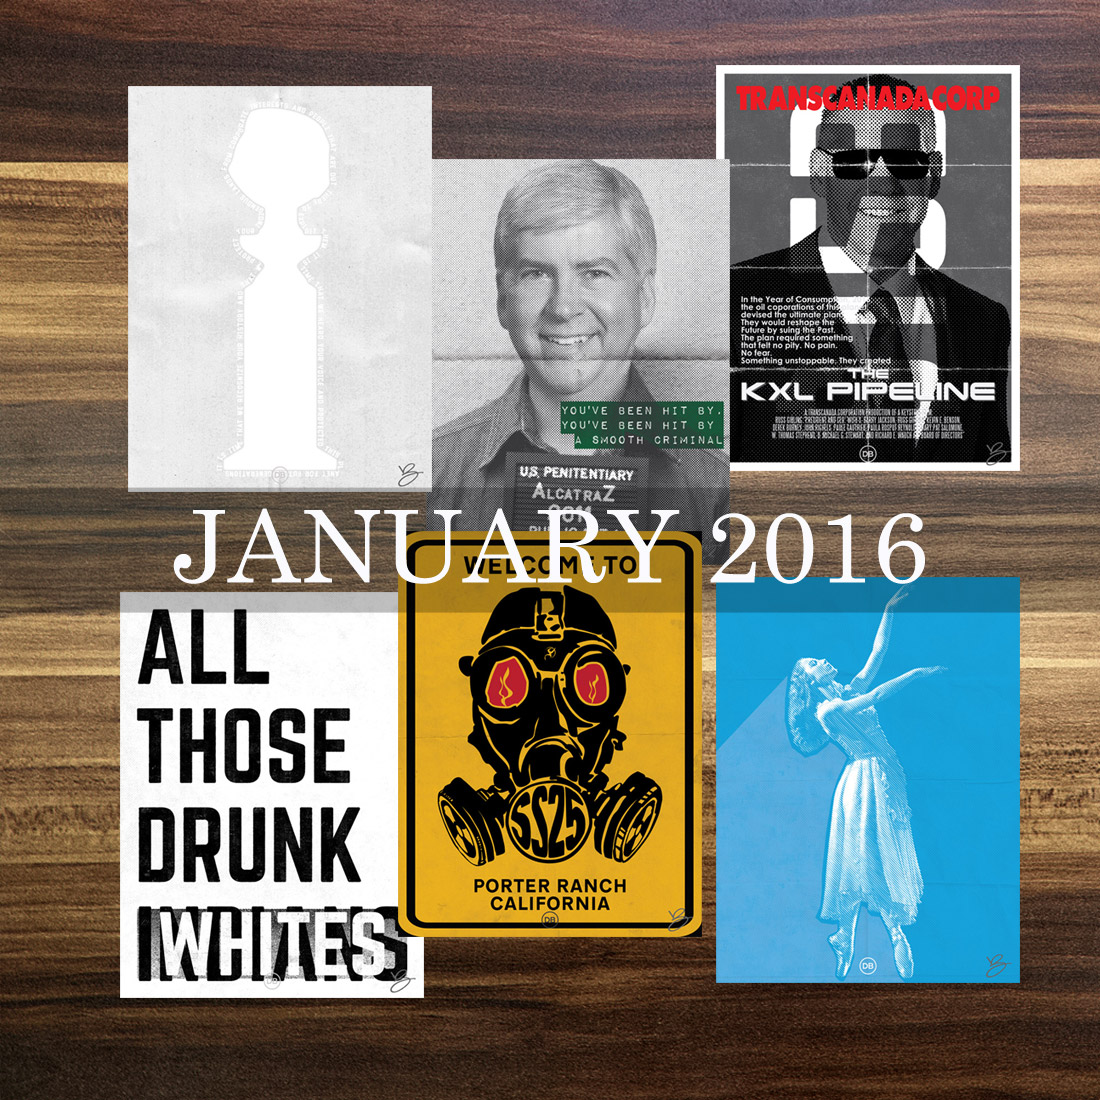 Art Roundup David Bernie Blog January 2016 Art Roundup